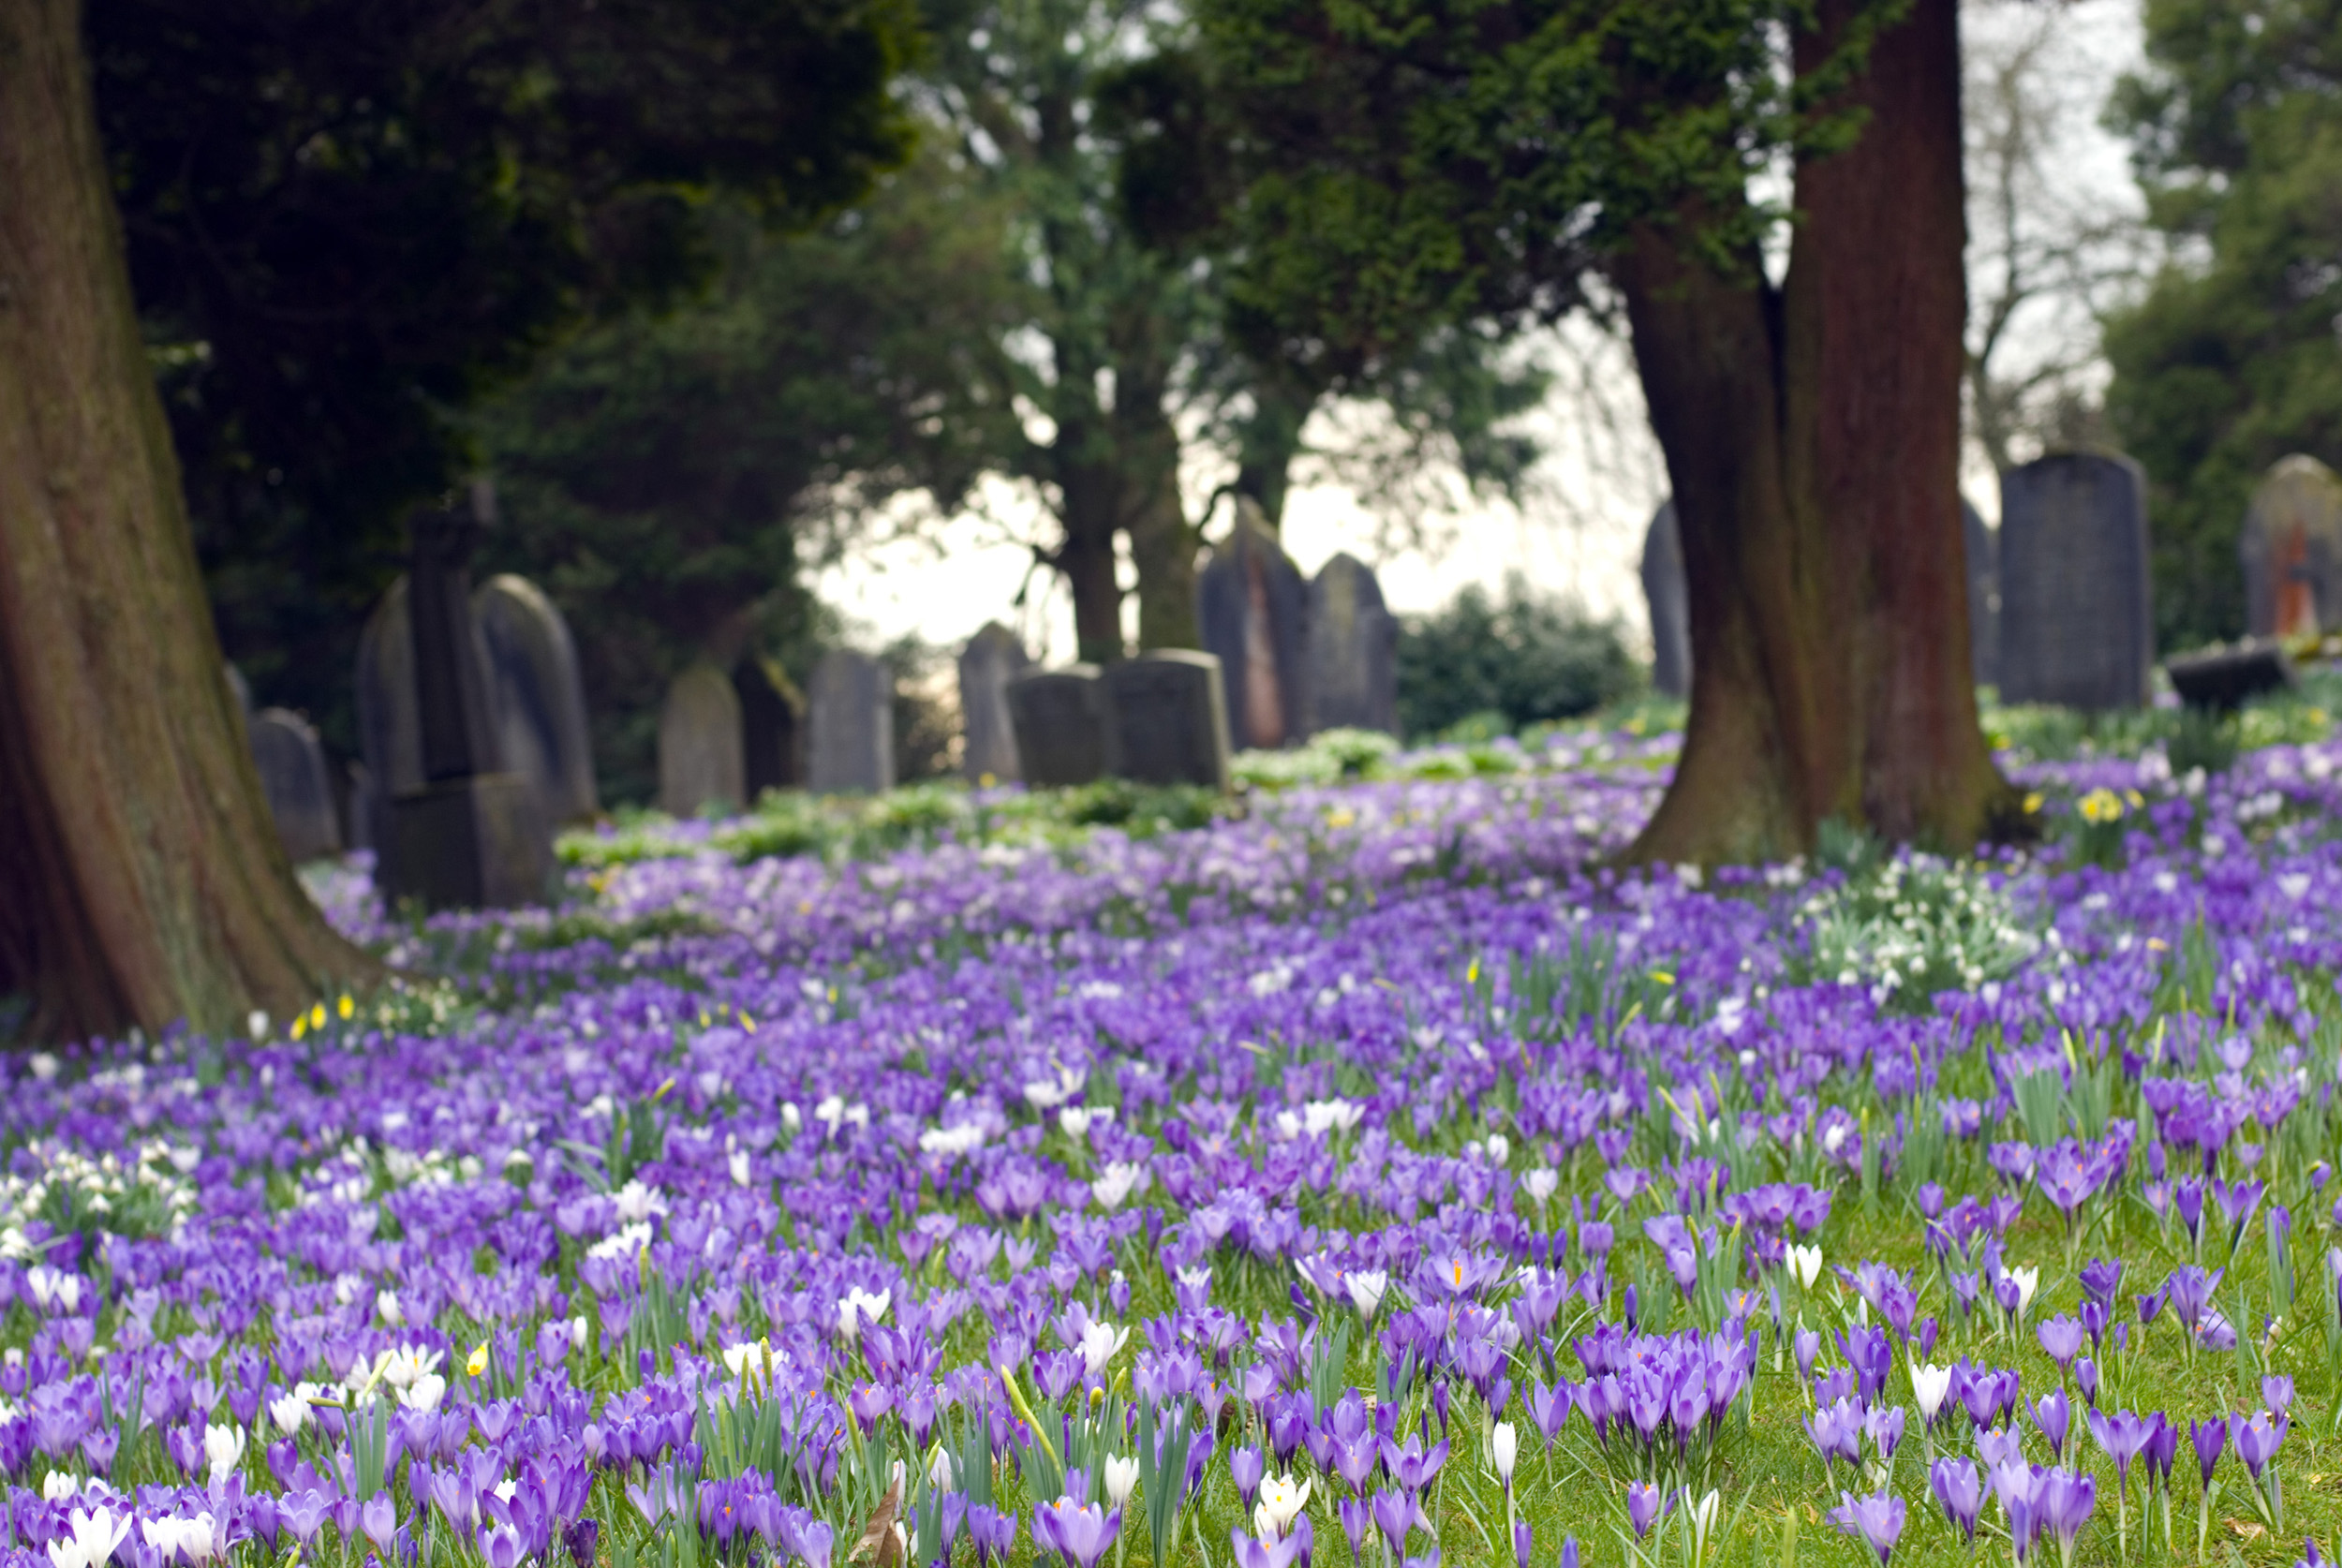 crocus_flowering.jpg - Pretty fresh purple and white Crocuses flowering beneath trees bordering the edge of a small country churchyard